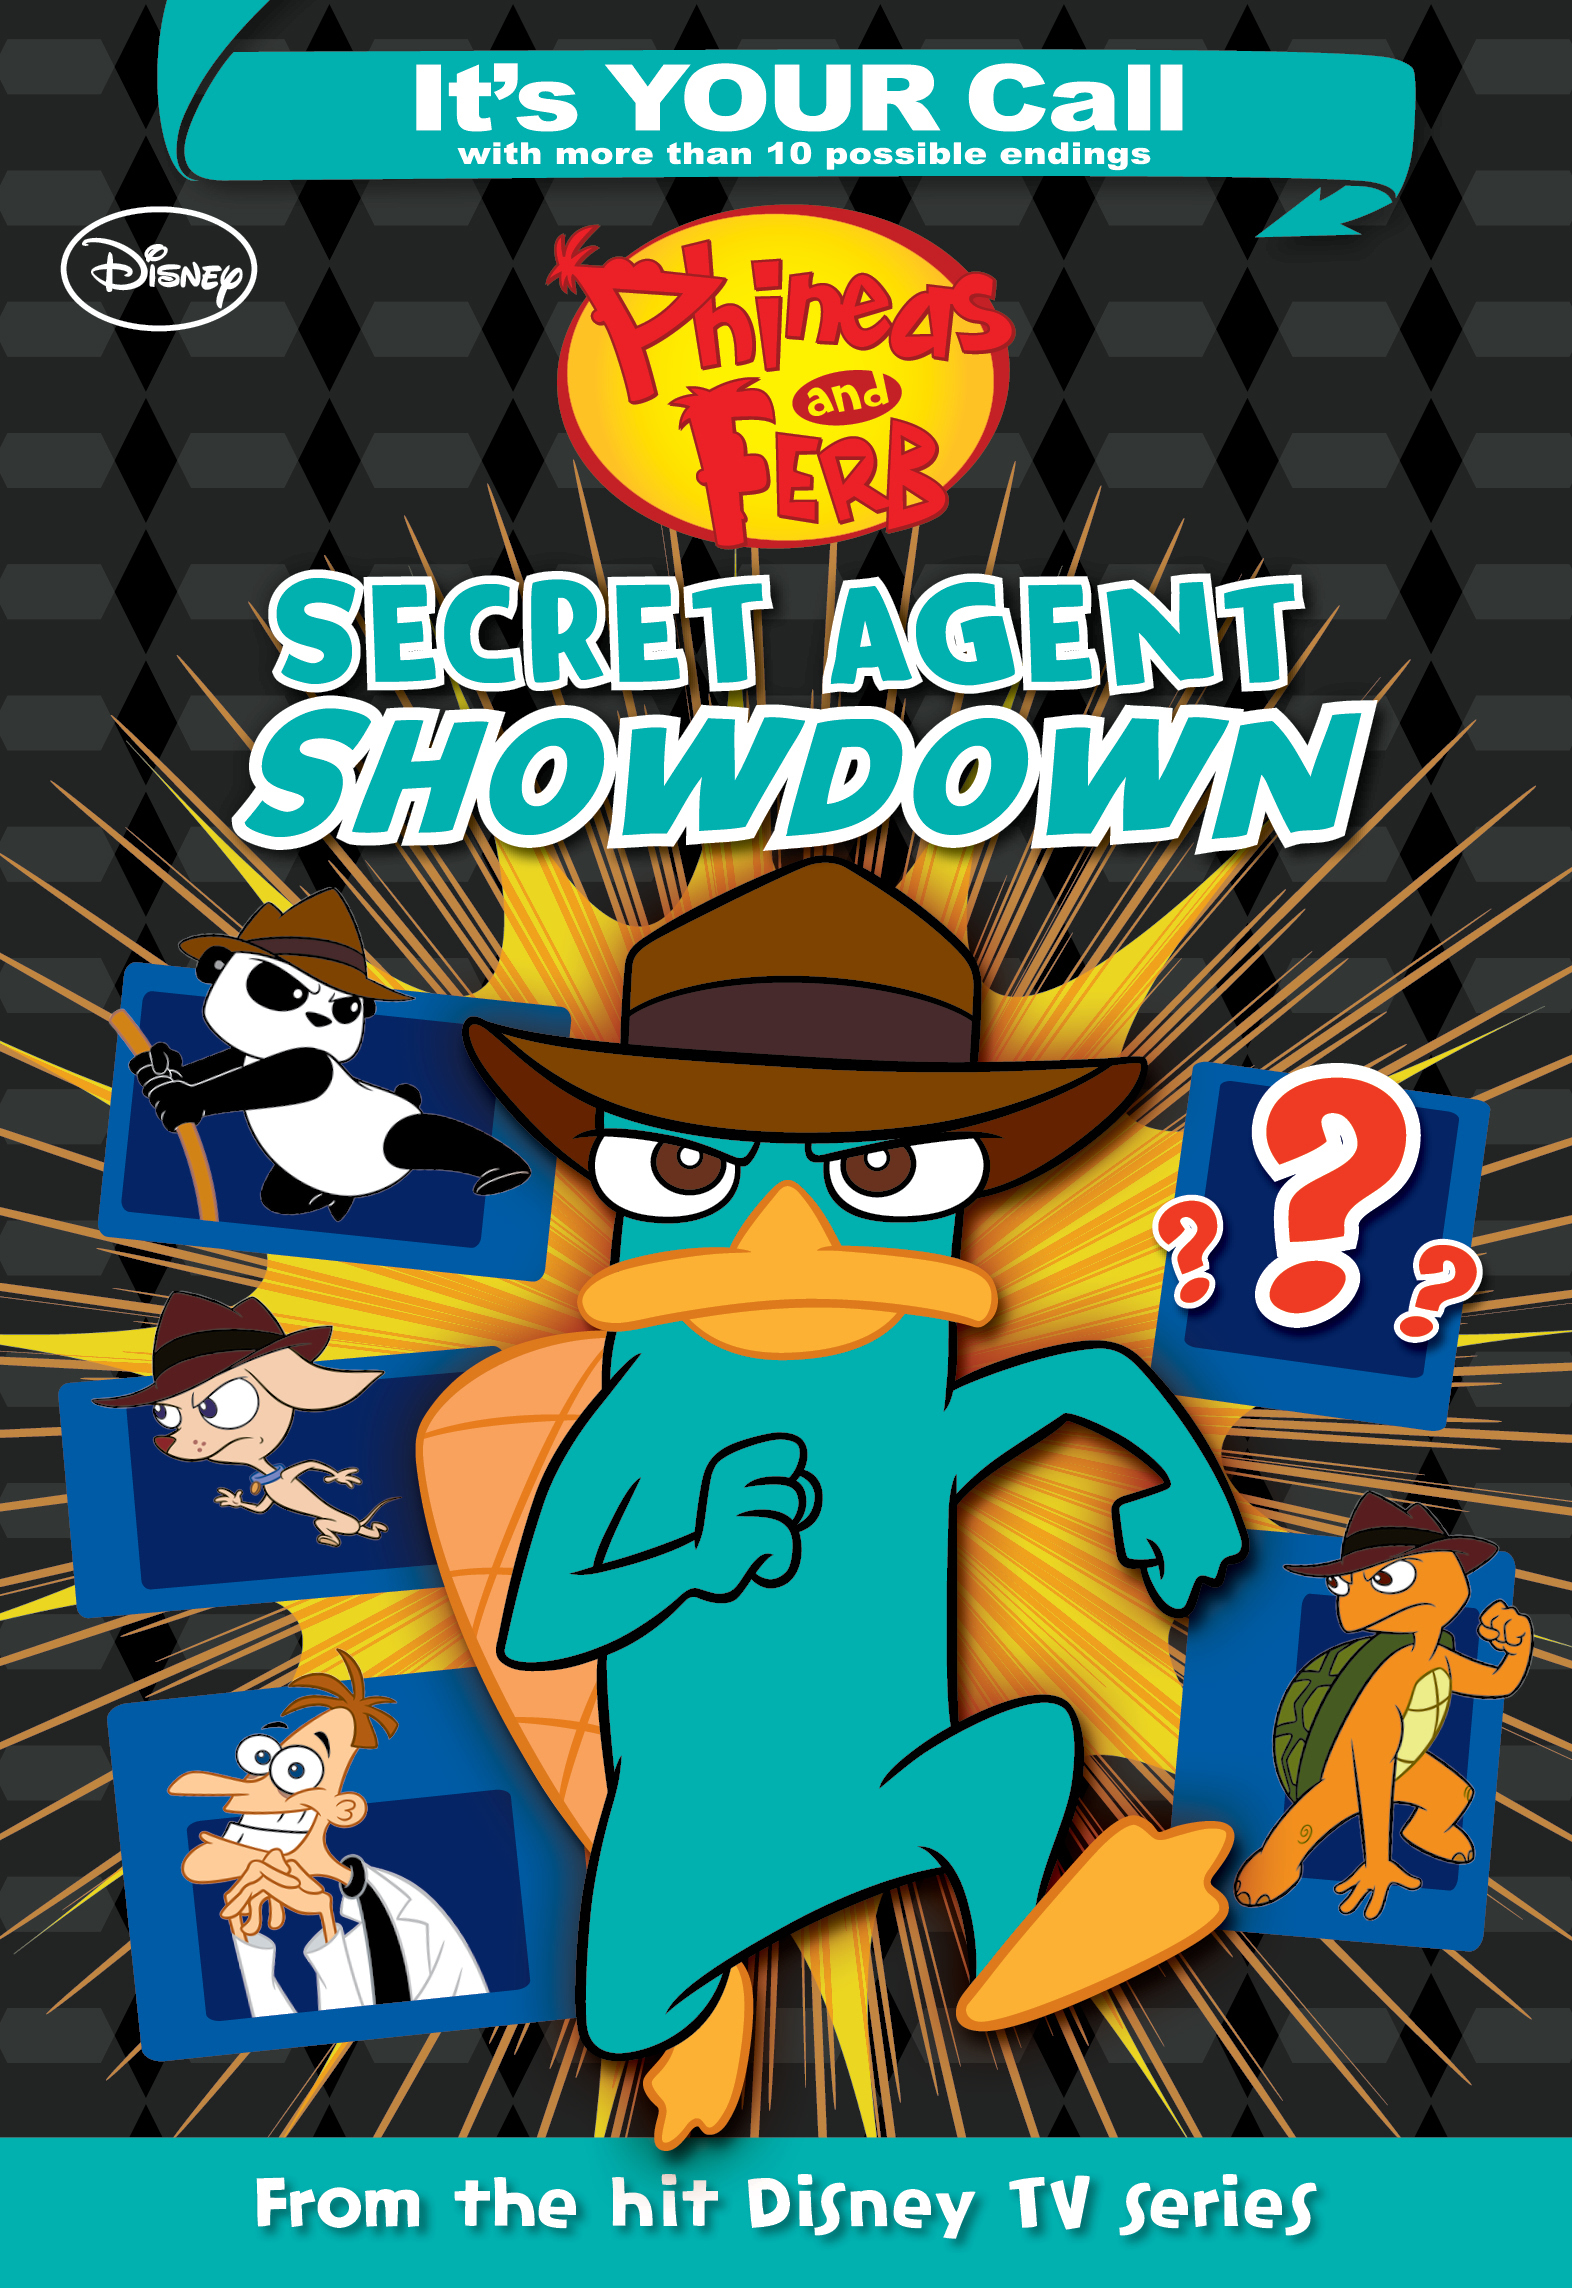 It's Your Call: Phineas and Ferb:  Secret Agent Showdown